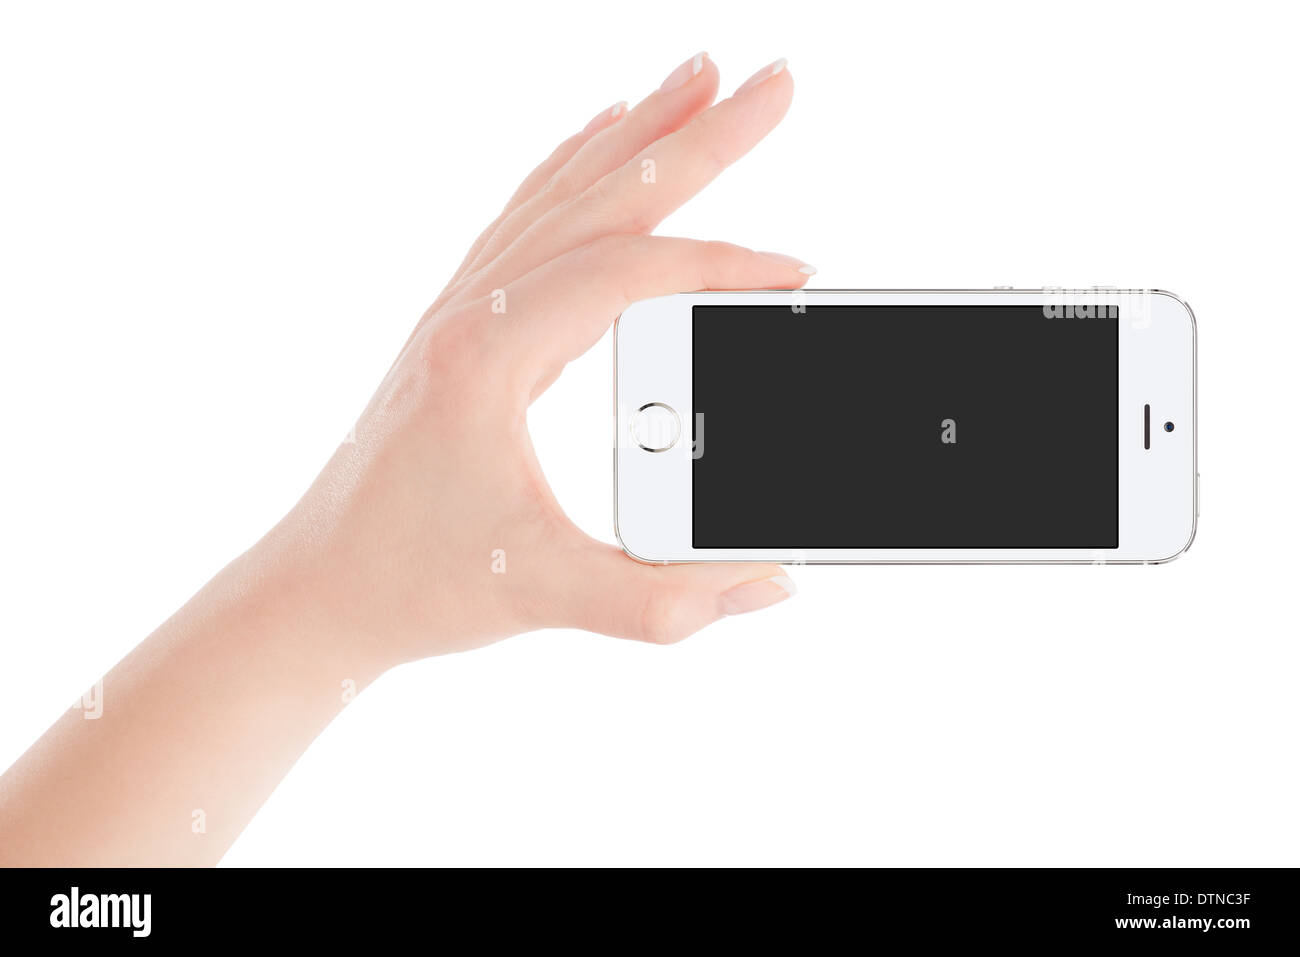 Female hand holding white modern smart phone with blank screen in landscape orientation. Isolated on white background. - Stock Image